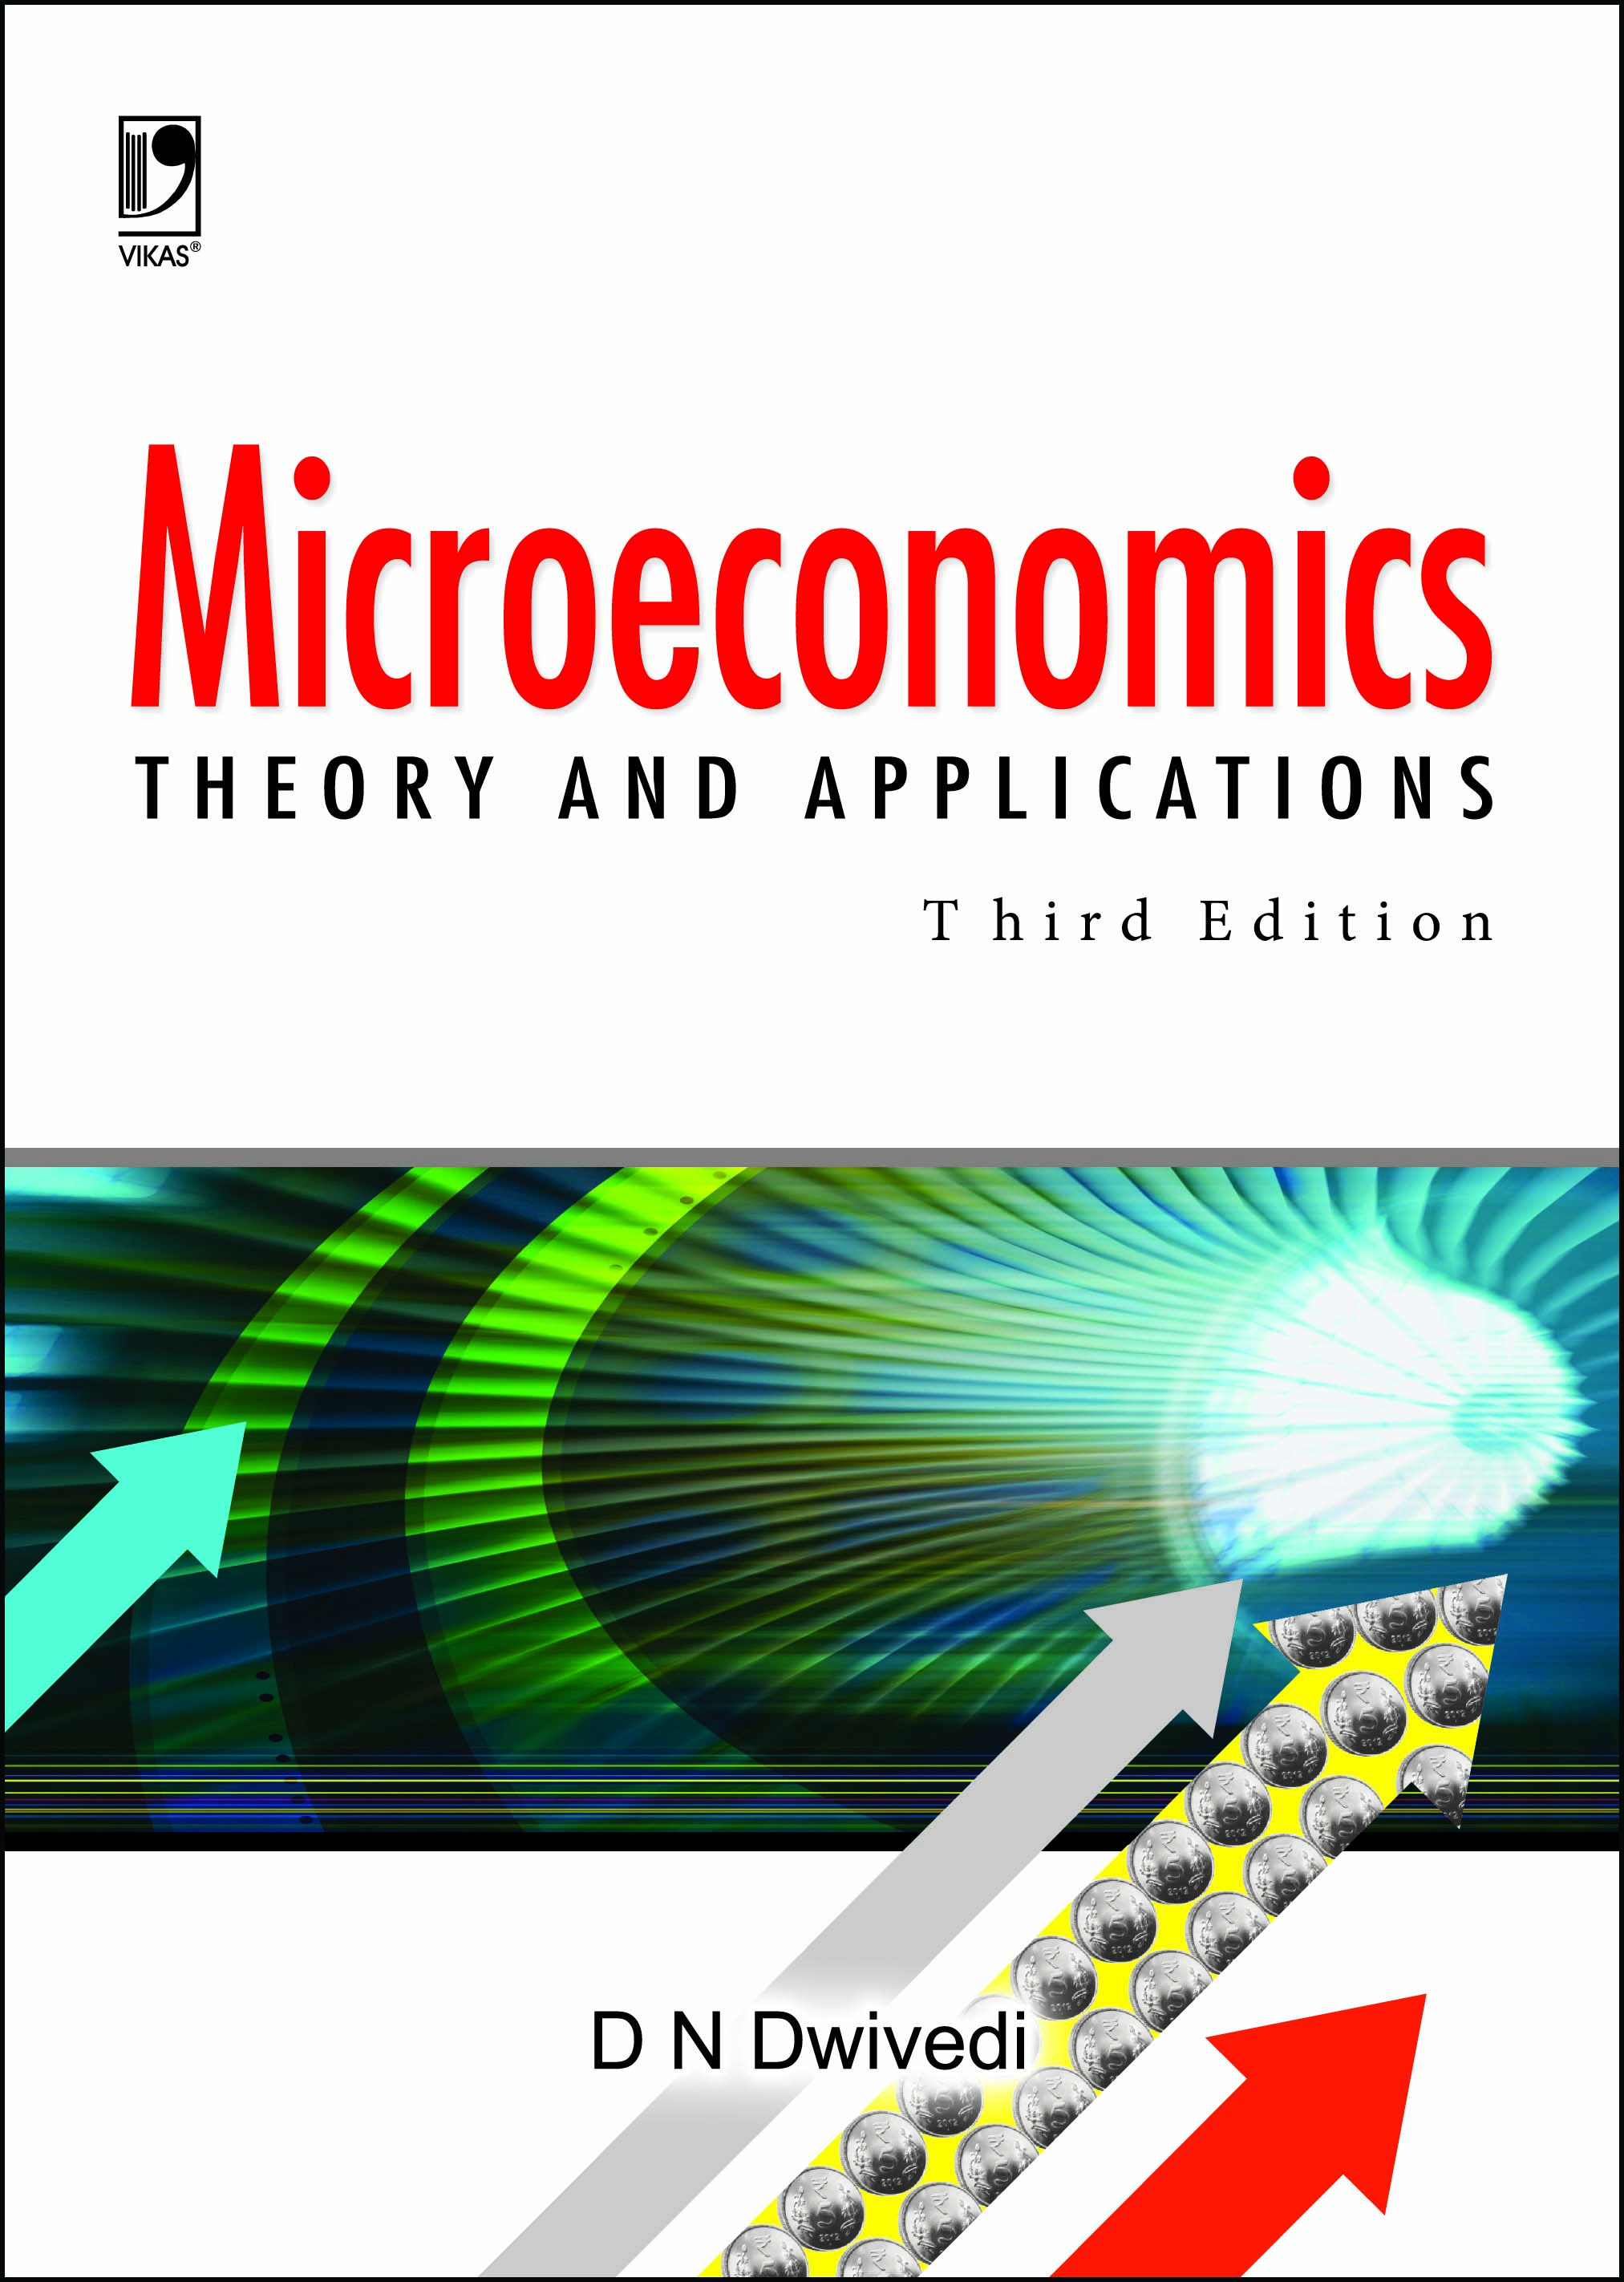 MICROECONOMICS: THEORY AND APPLICATIONS, 3/e